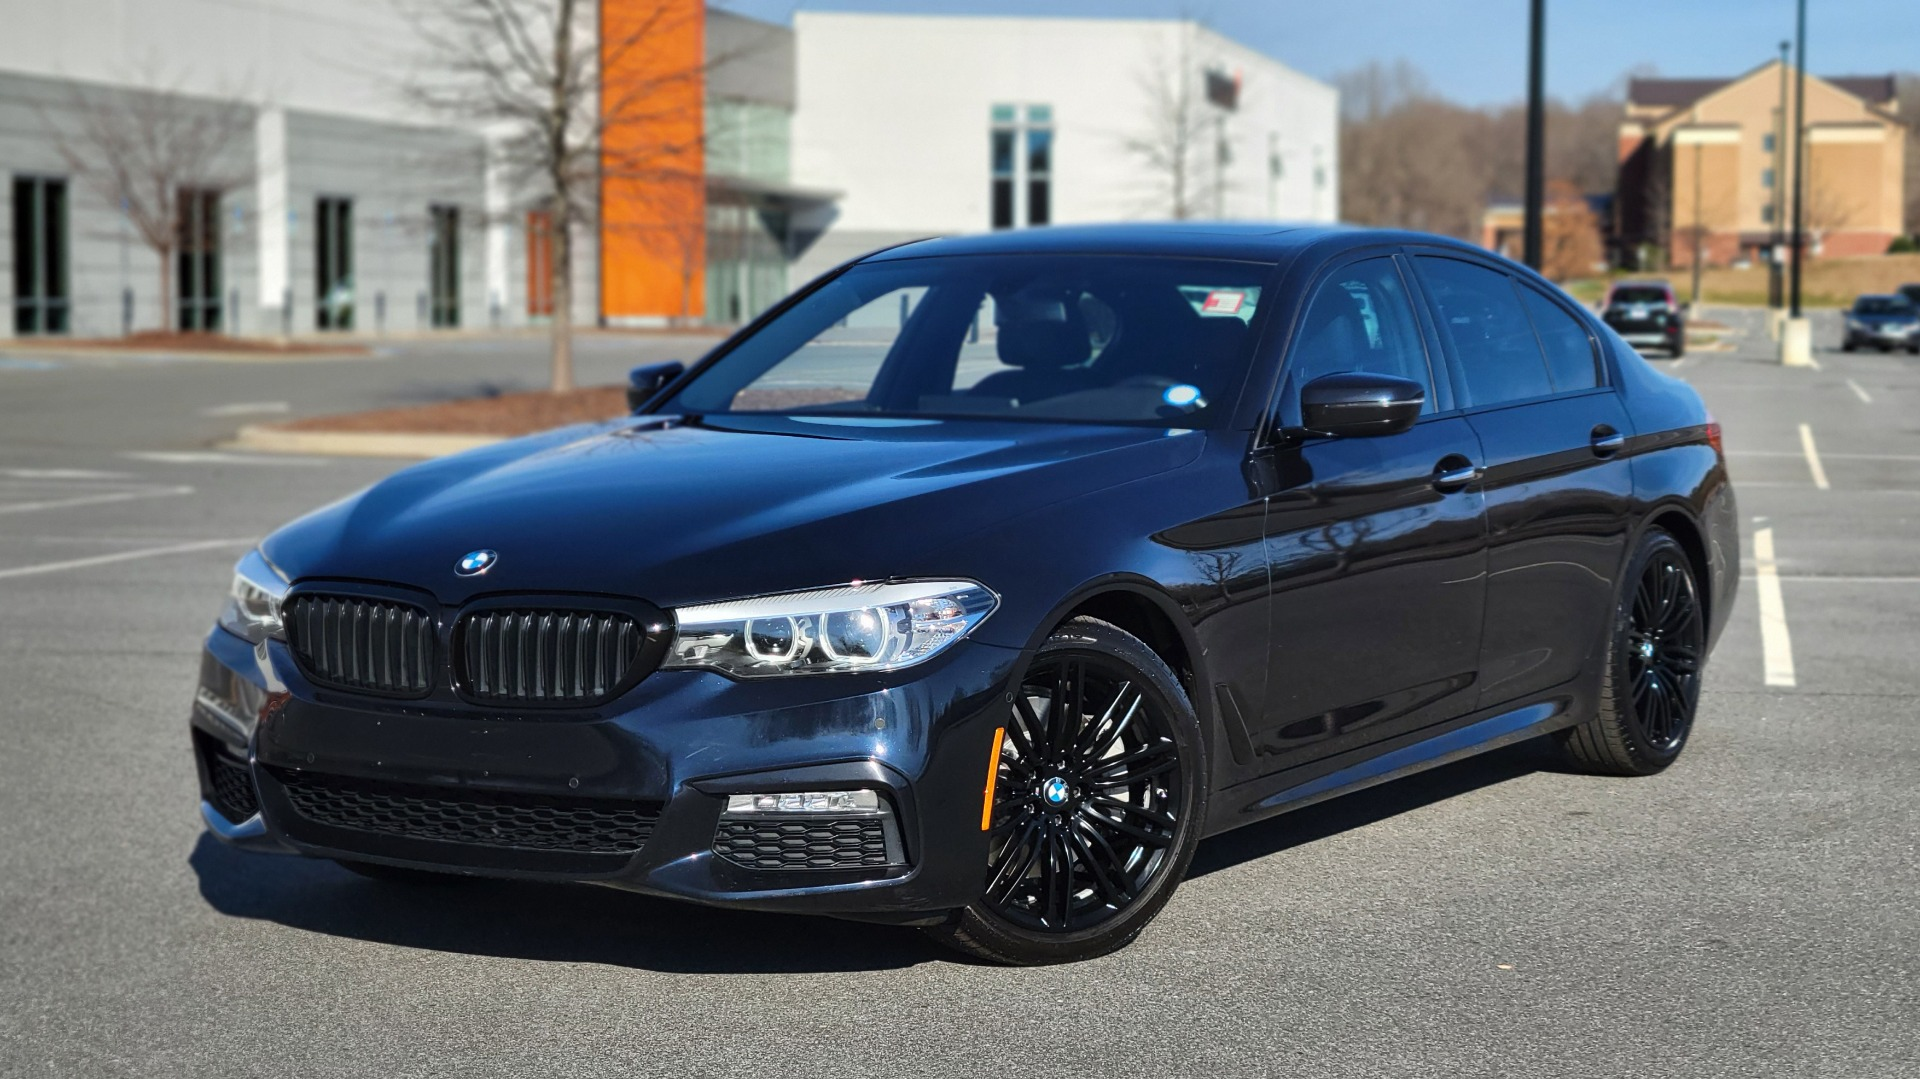 Used 2018 BMW 5 SERIES 540I XDRIVE / M-SPORT / NAV / WIFI / SUNROOF / REARVIEW for sale $36,773 at Formula Imports in Charlotte NC 28227 1